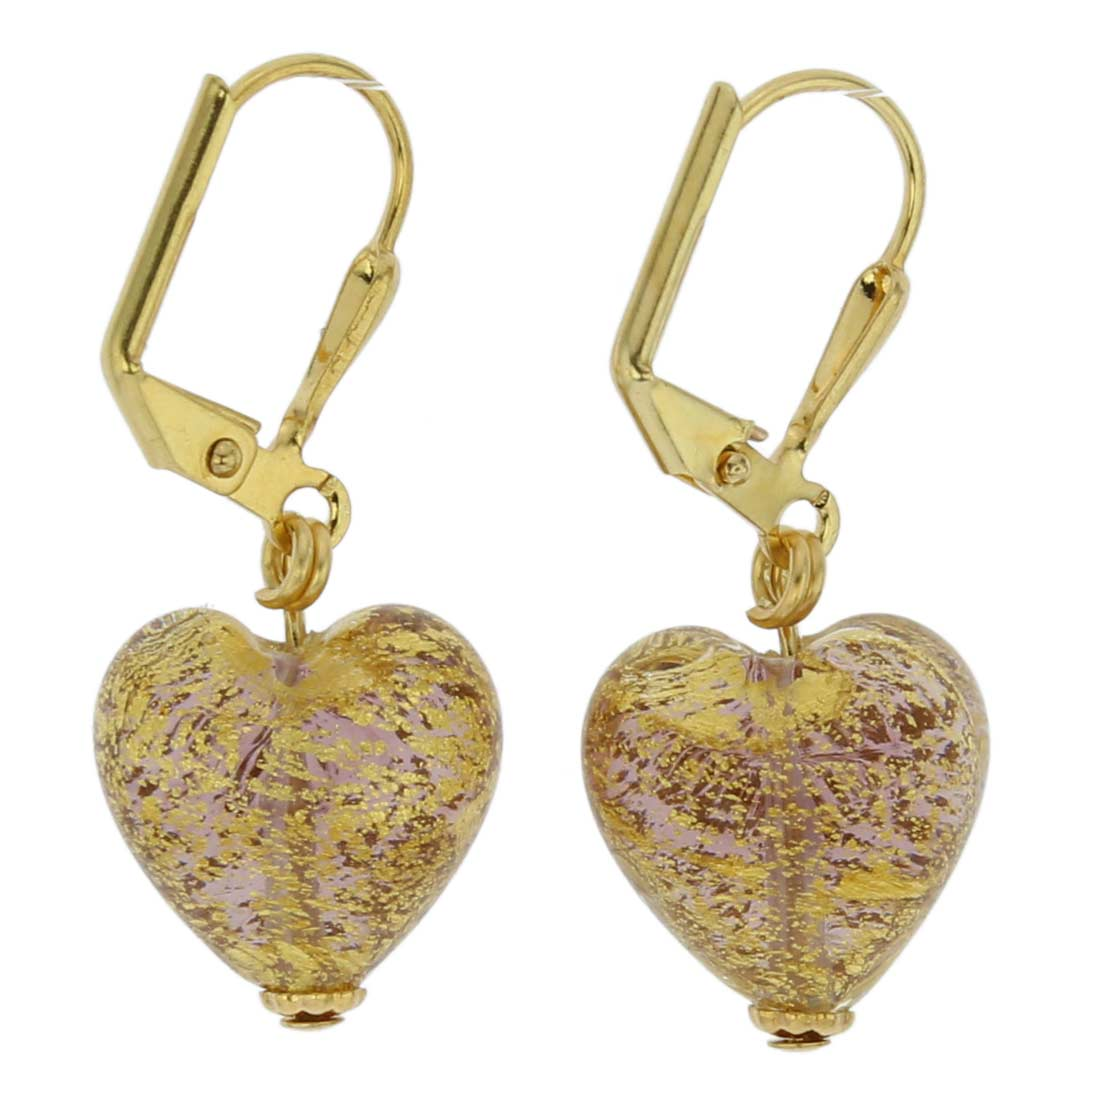 Ca D\'Oro Murano Heart Earrings - Purple